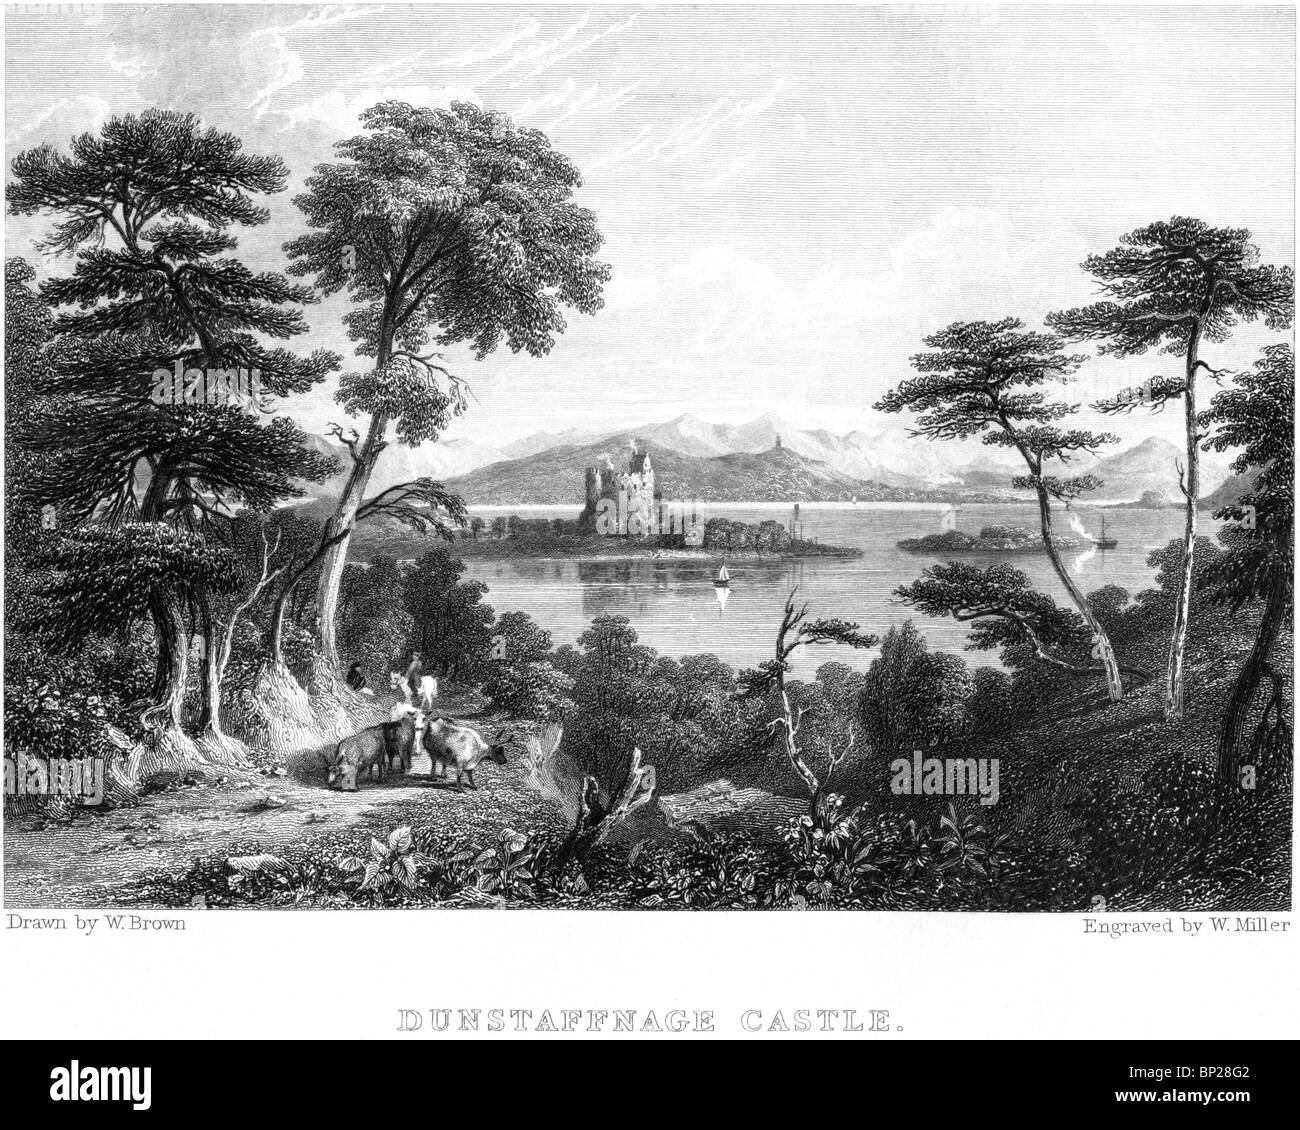 An engraving of Dunstaffnage Castle, near Oban,Scotland - scanned at high resolution from a book published in 1830. - Stock Image